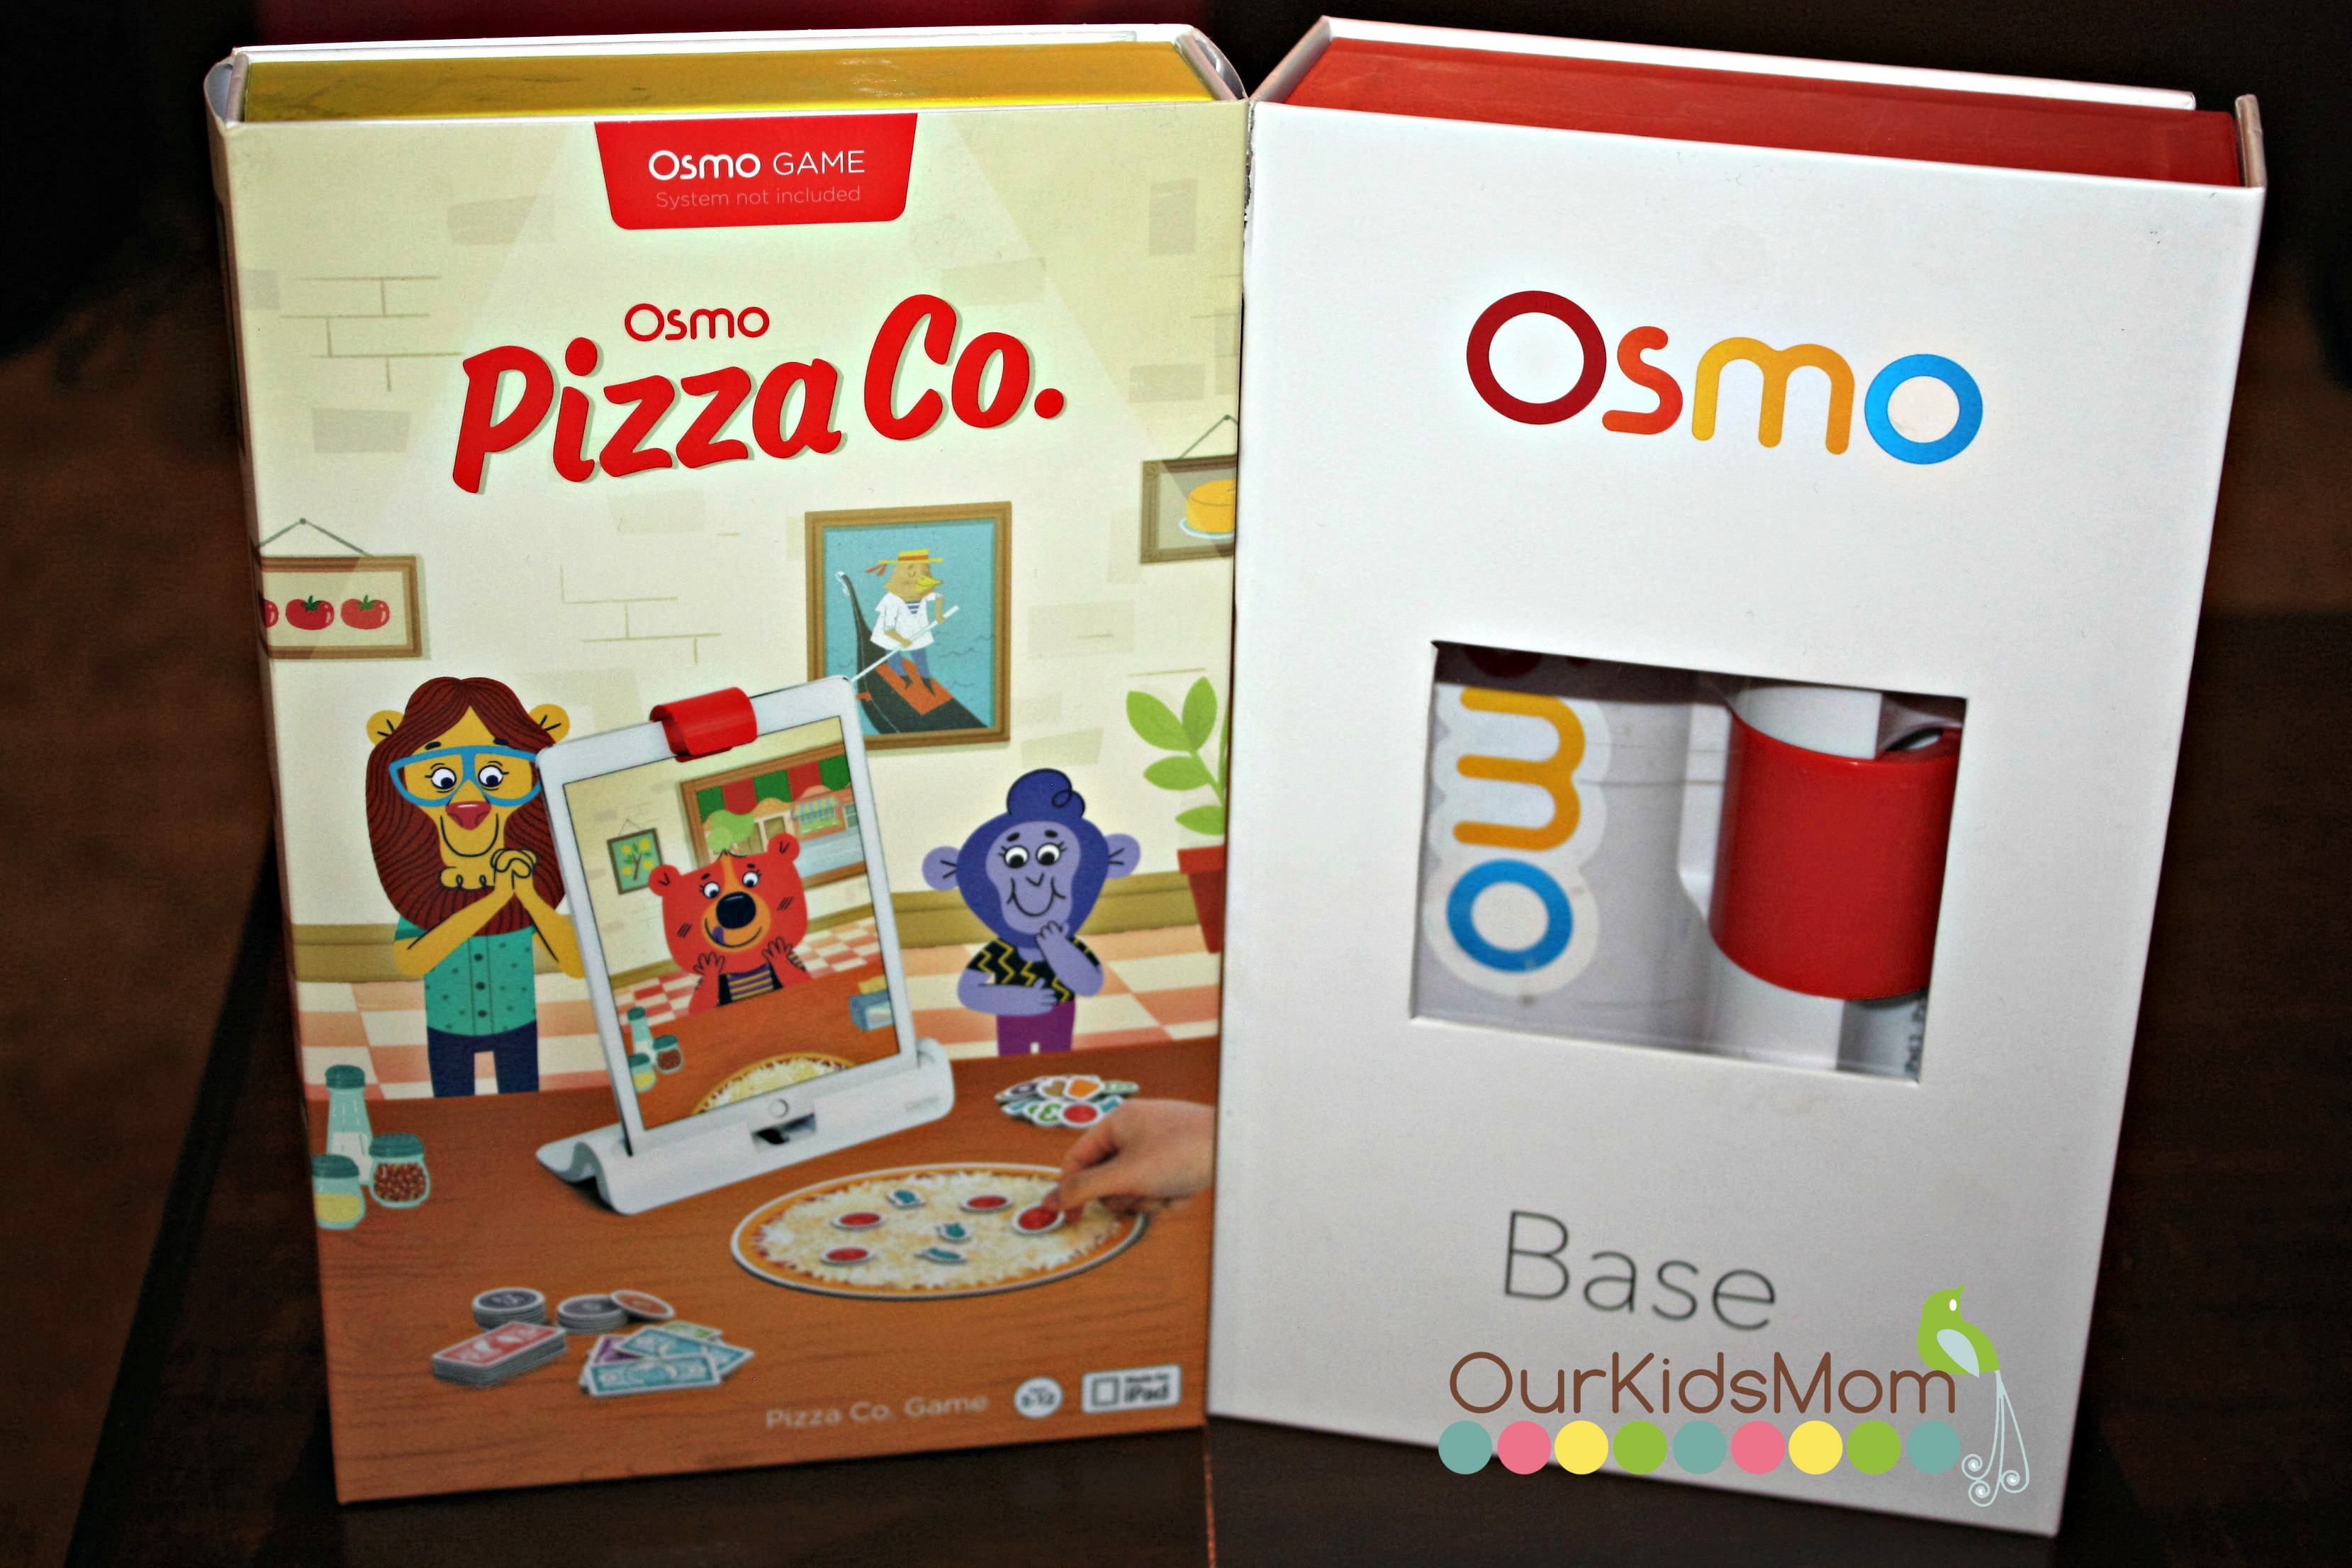 Osmo Pizza Co and Base